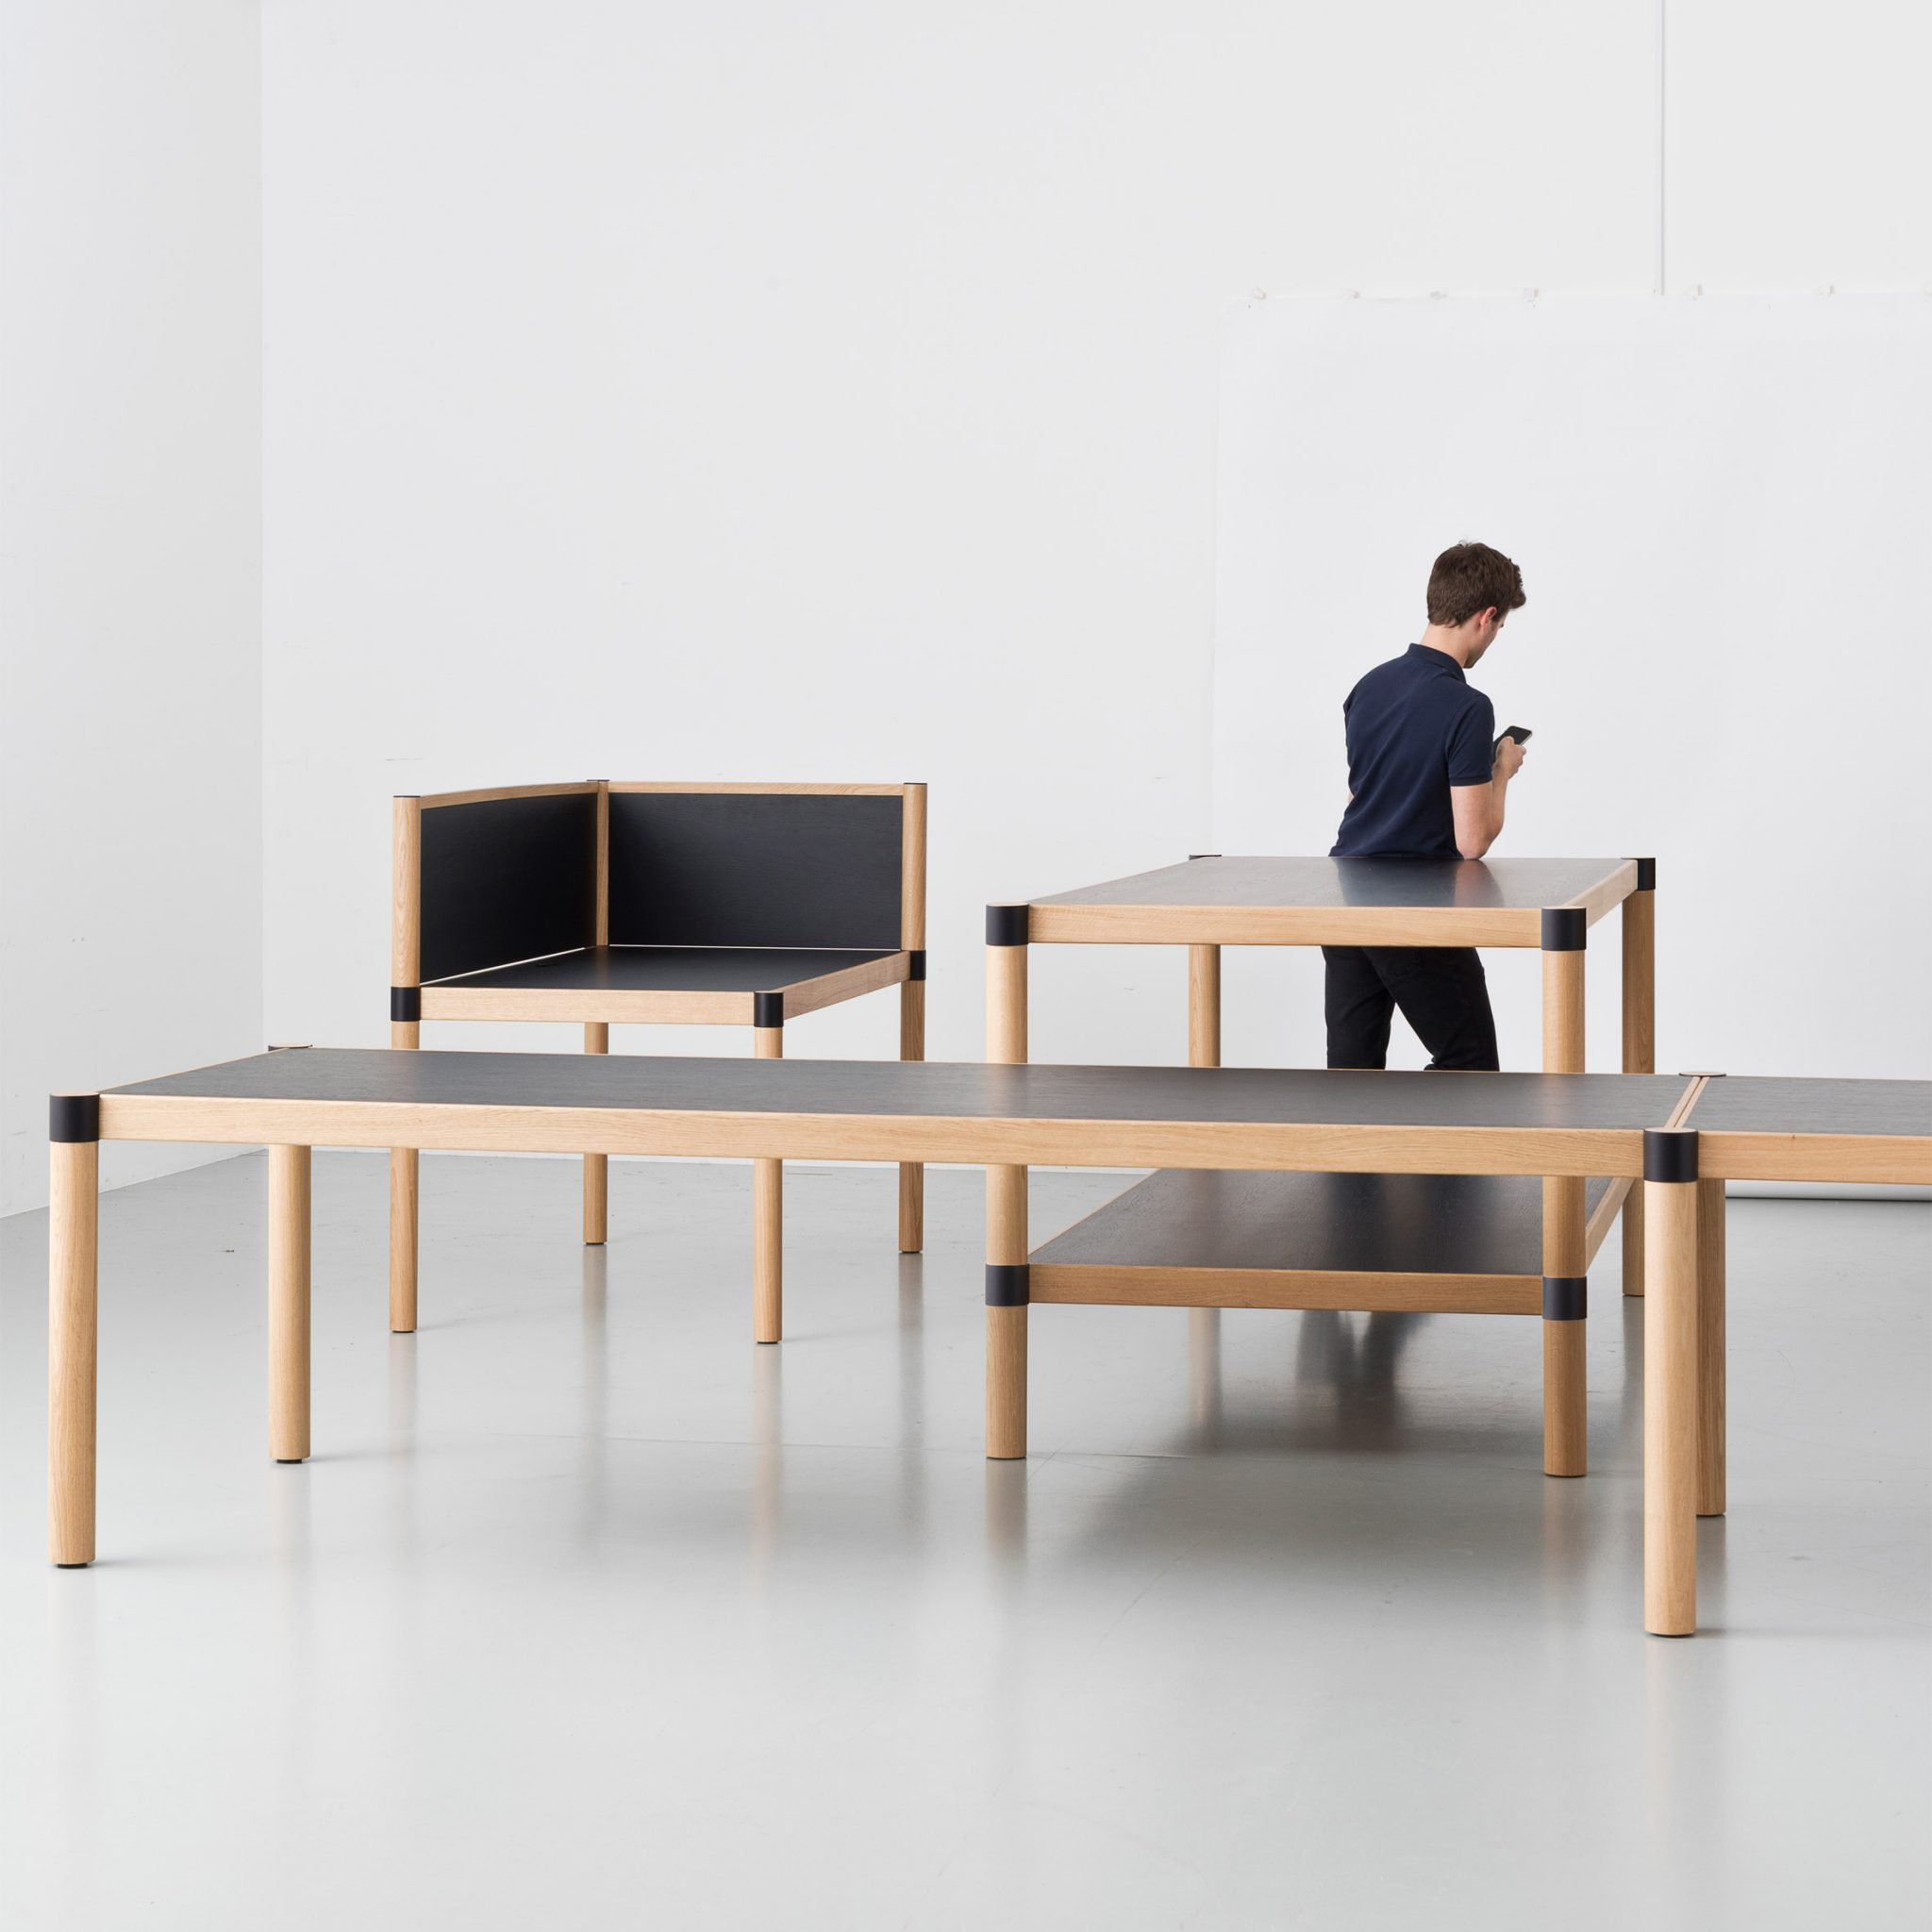 orgatec-bouroullec-brothers-vitra-design-office-furniture_dezeen_2364_col_7